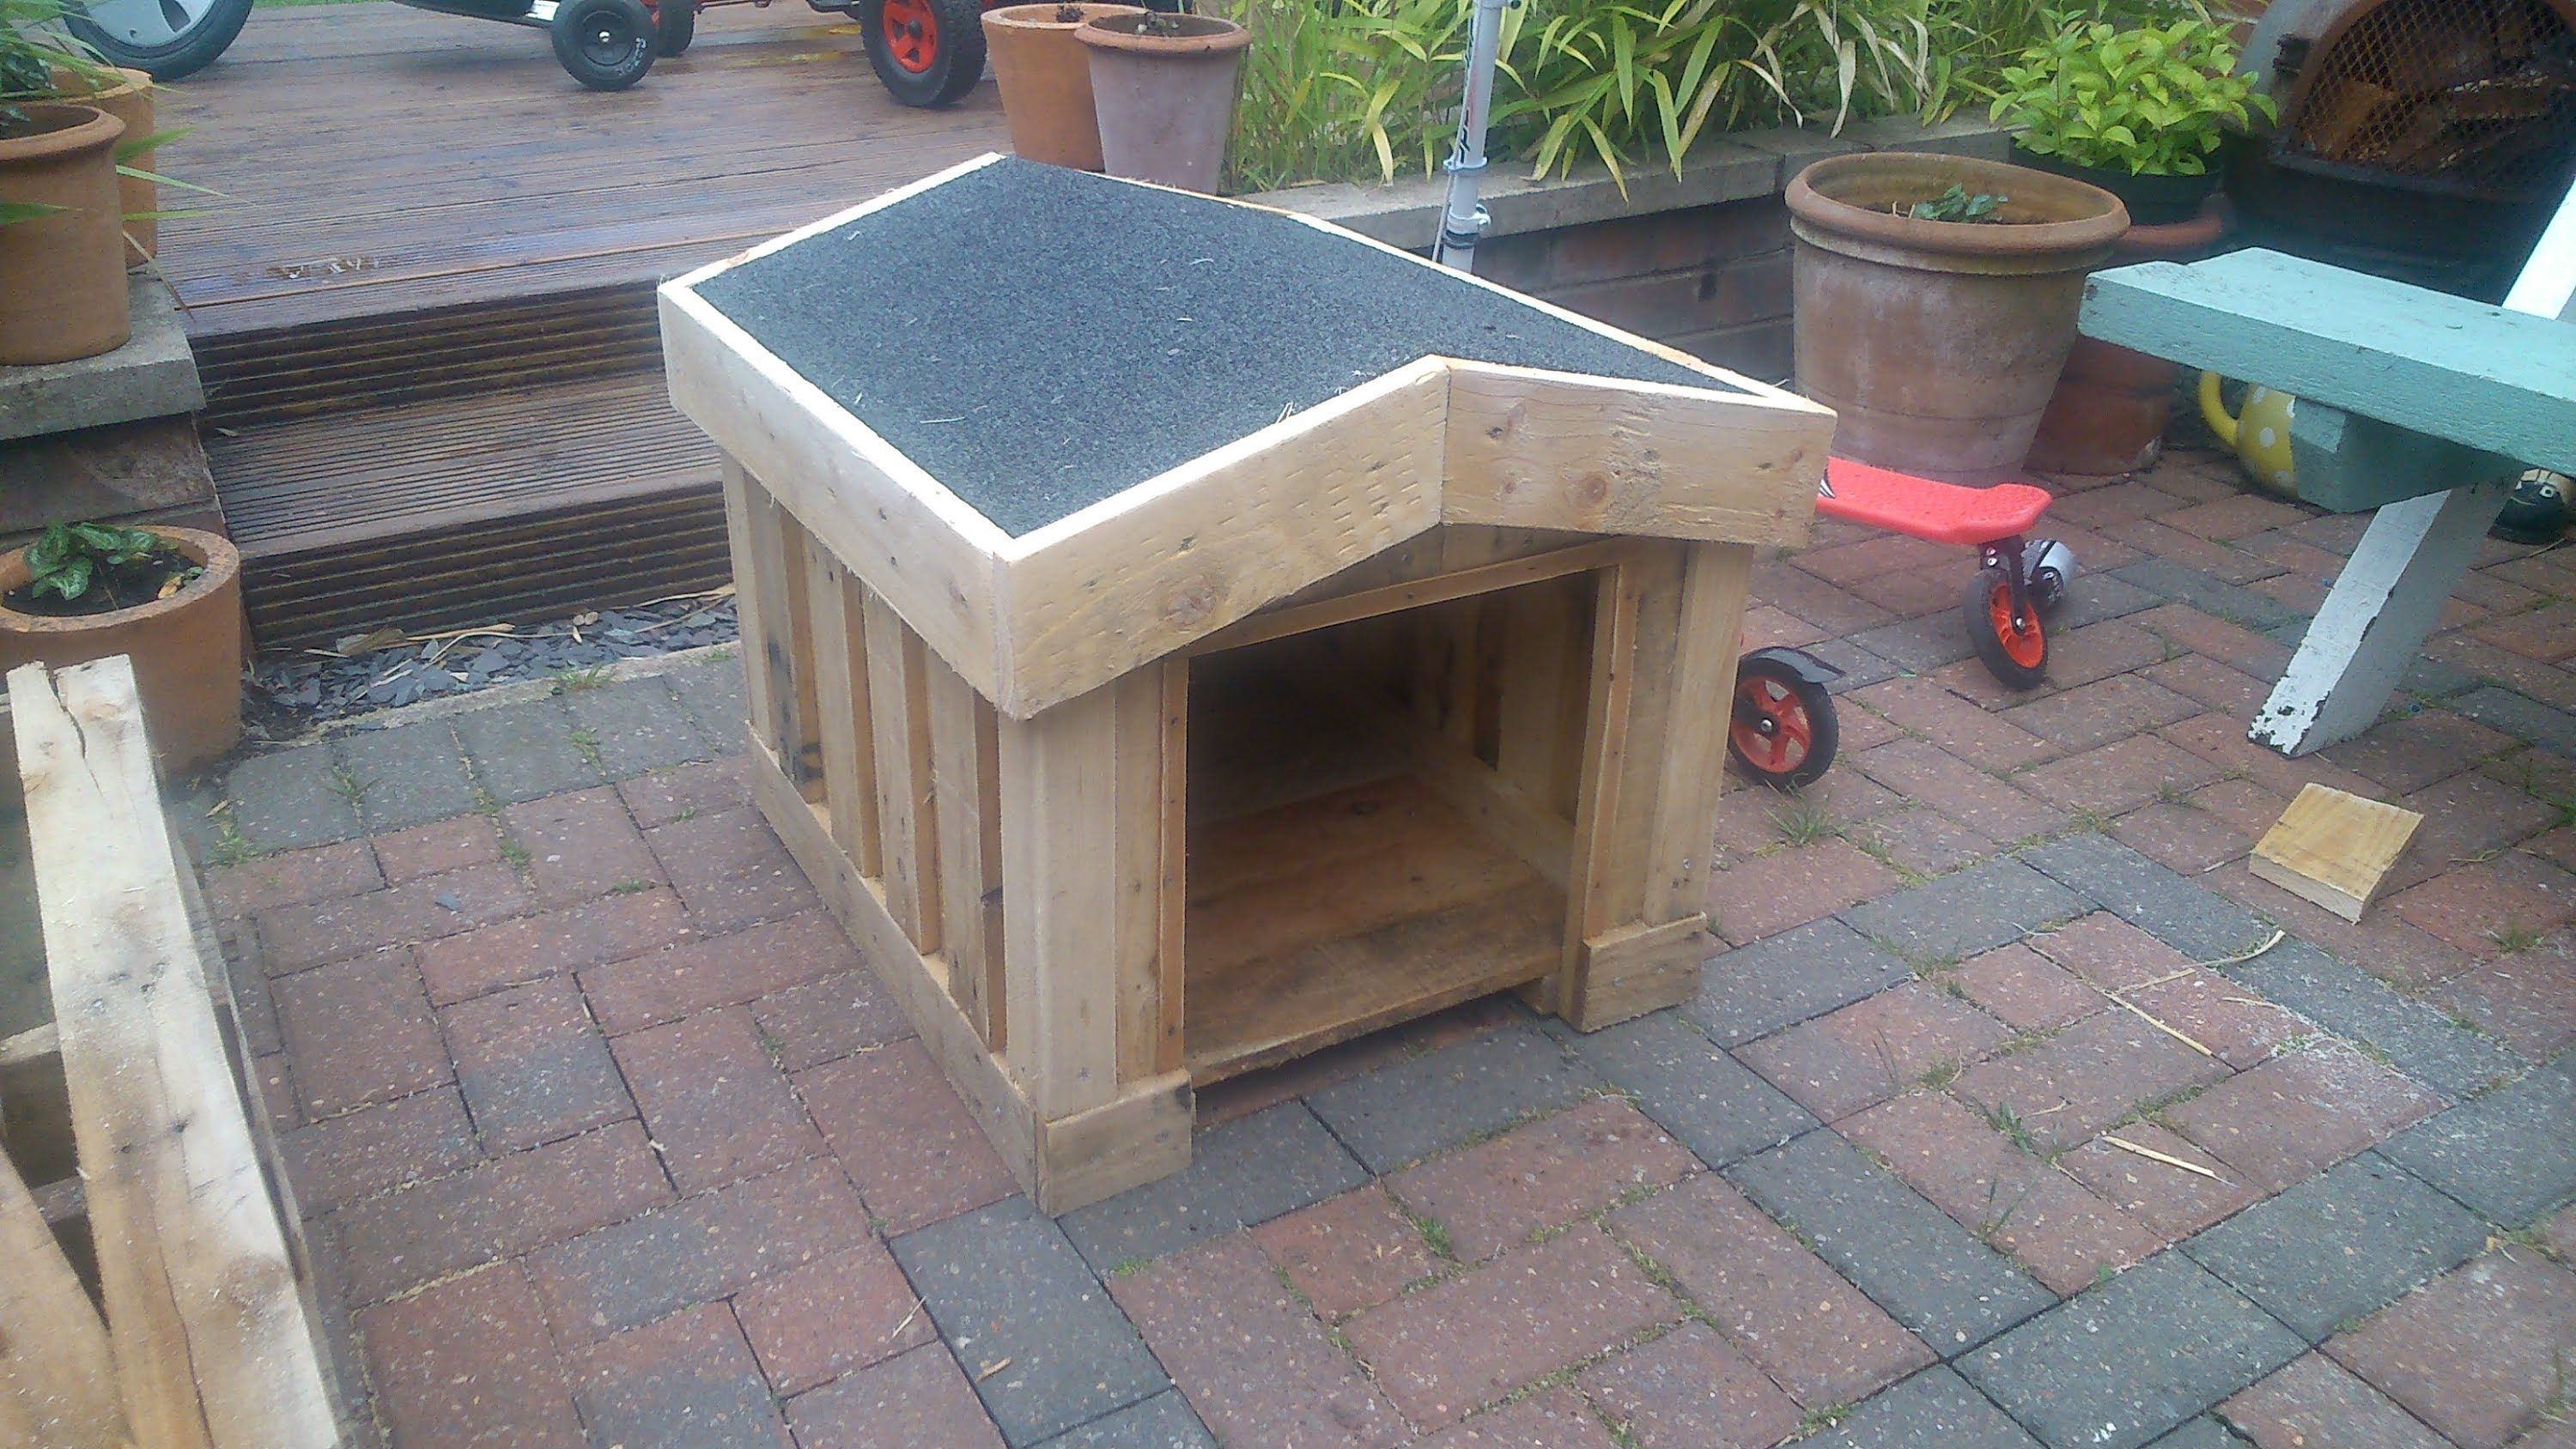 How to build a small dog kennel out of pallets step by step